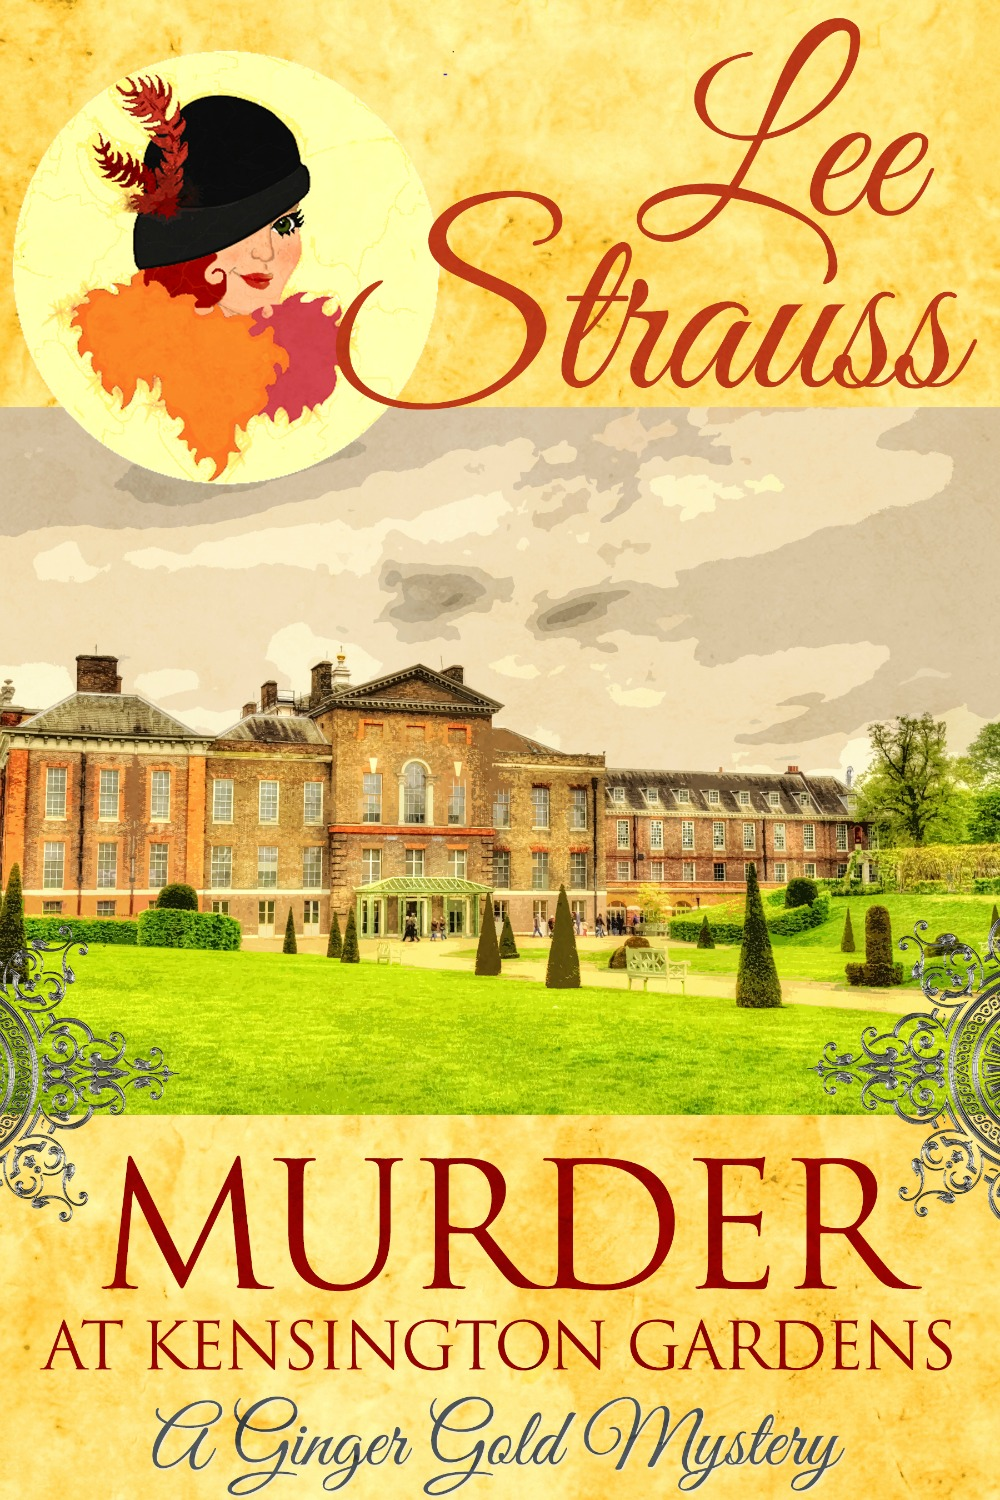 Murder at Kensington Gardens